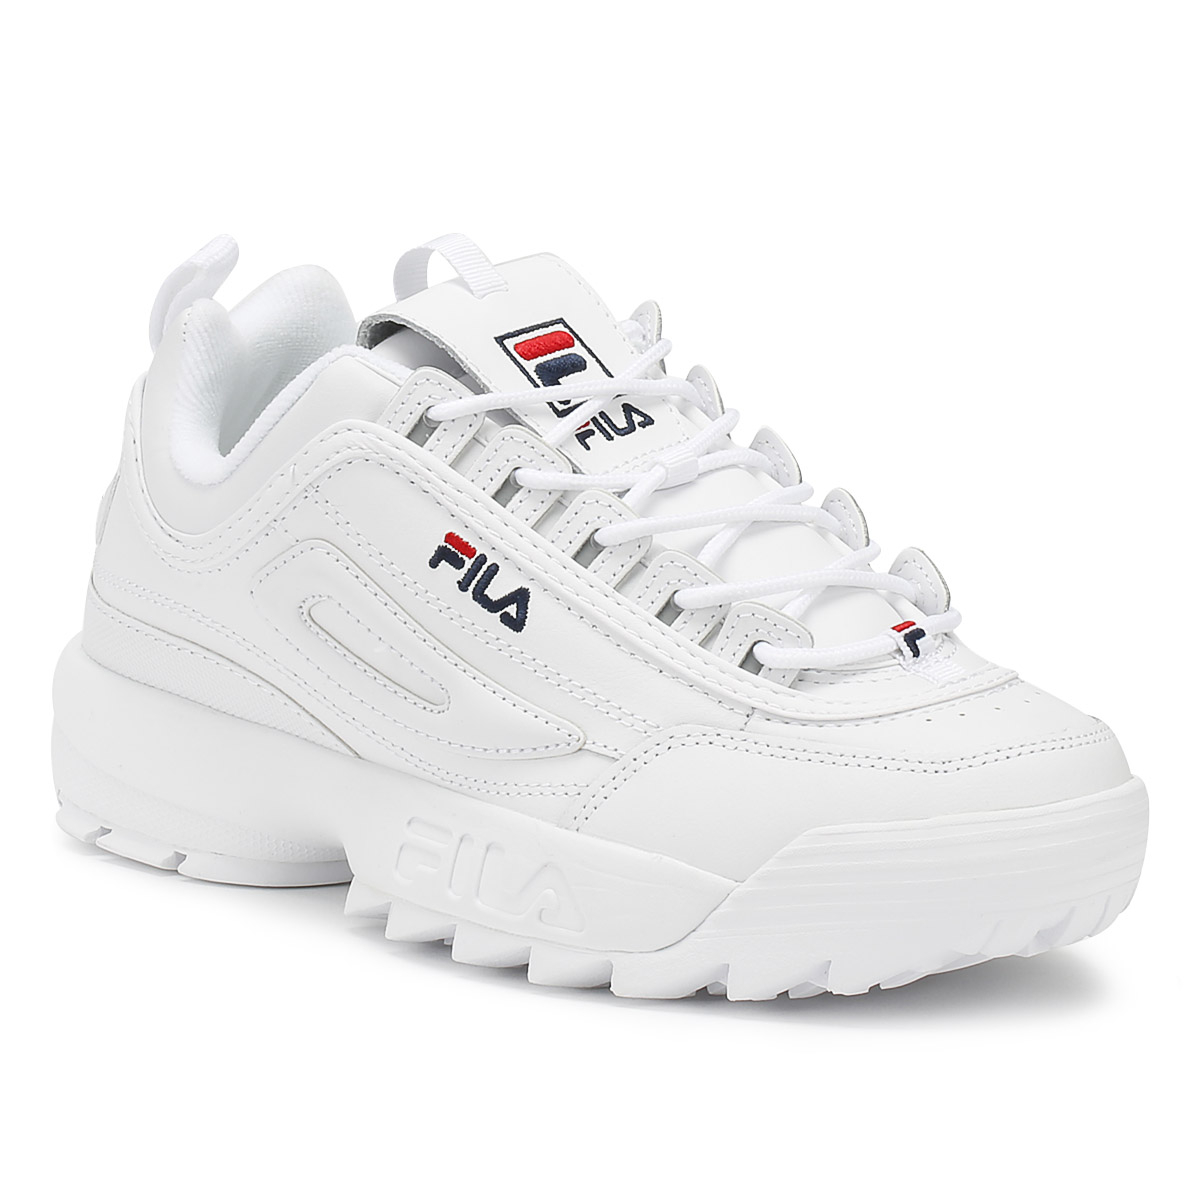 31980f9a Details about Fila Womens Trainers White Disruptor II Premium Sport Casual  Lace Up Shoes